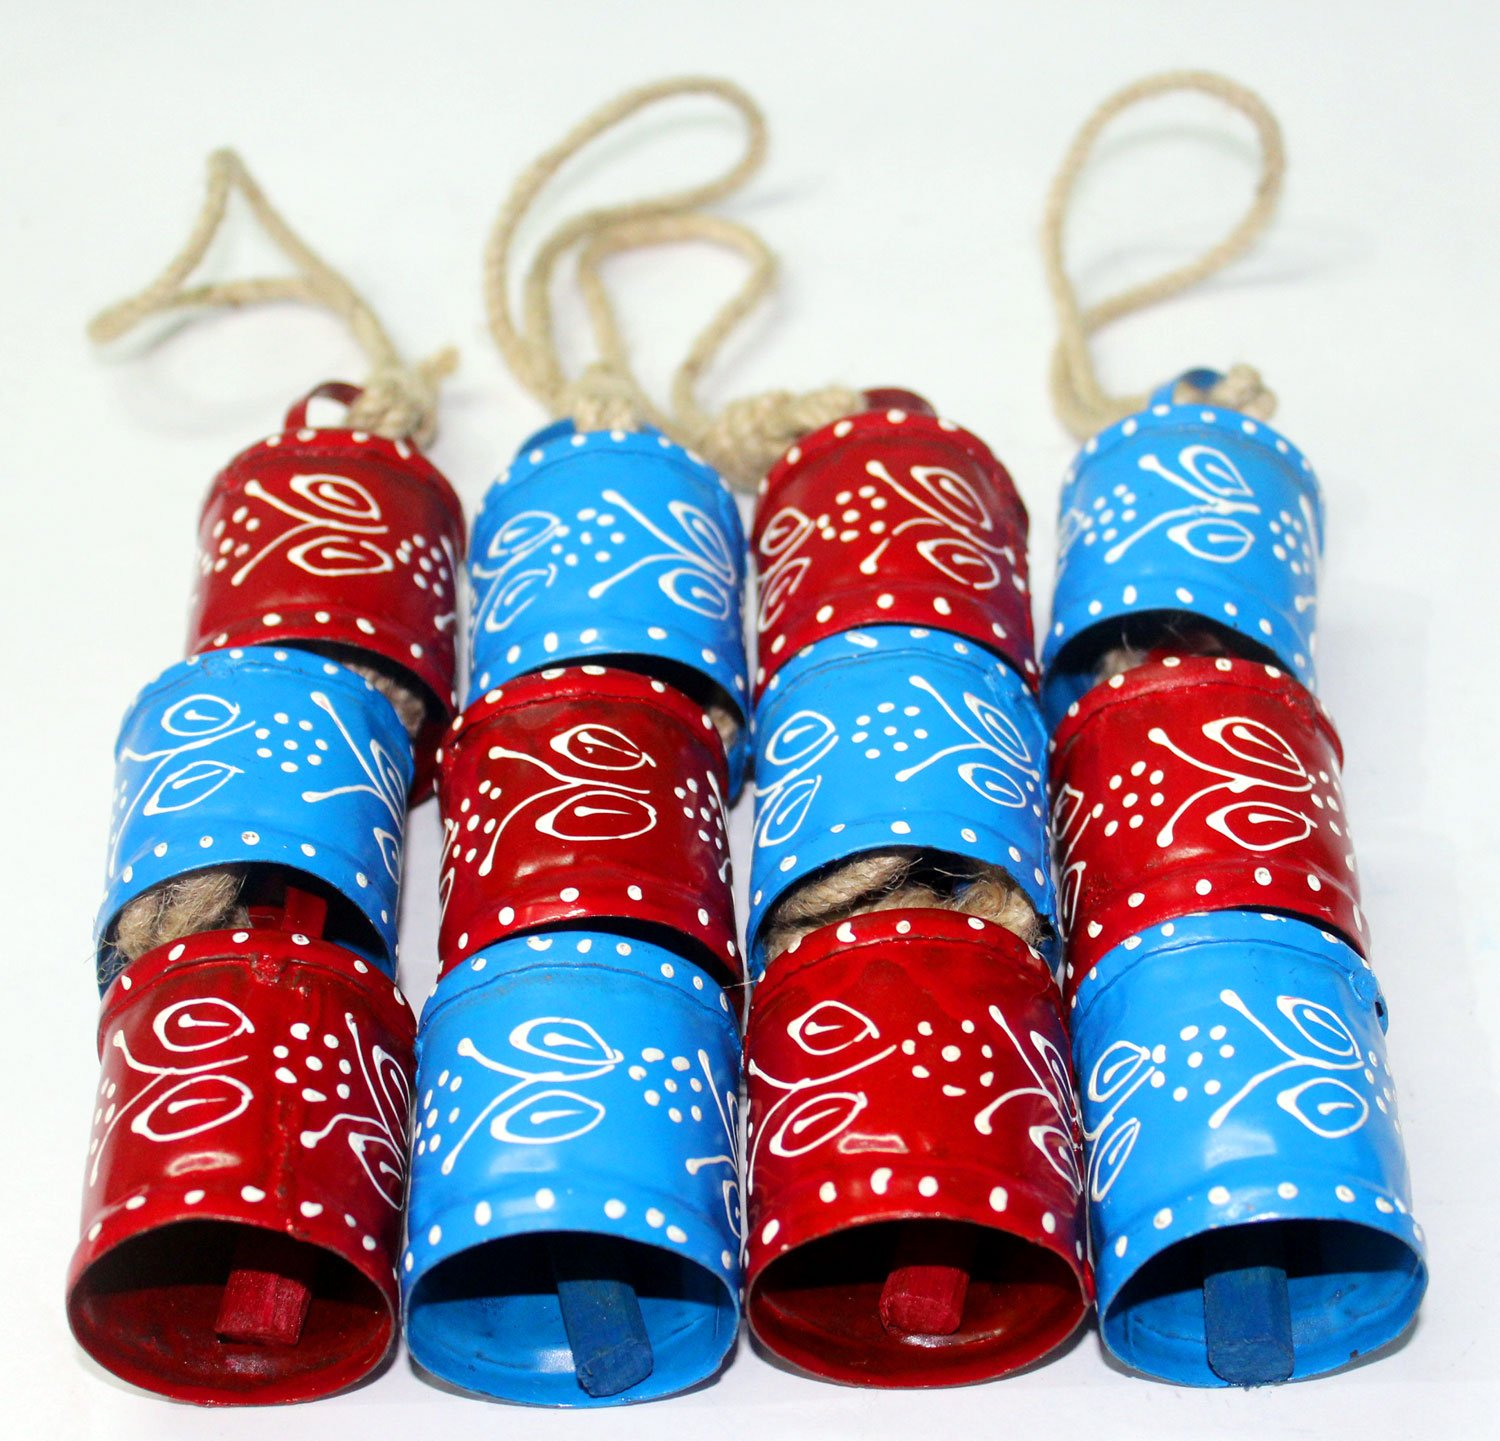 One Dozen Hand Painted Decorative Tin Bells 2.5''H 12 Pieces by Mango Gifts